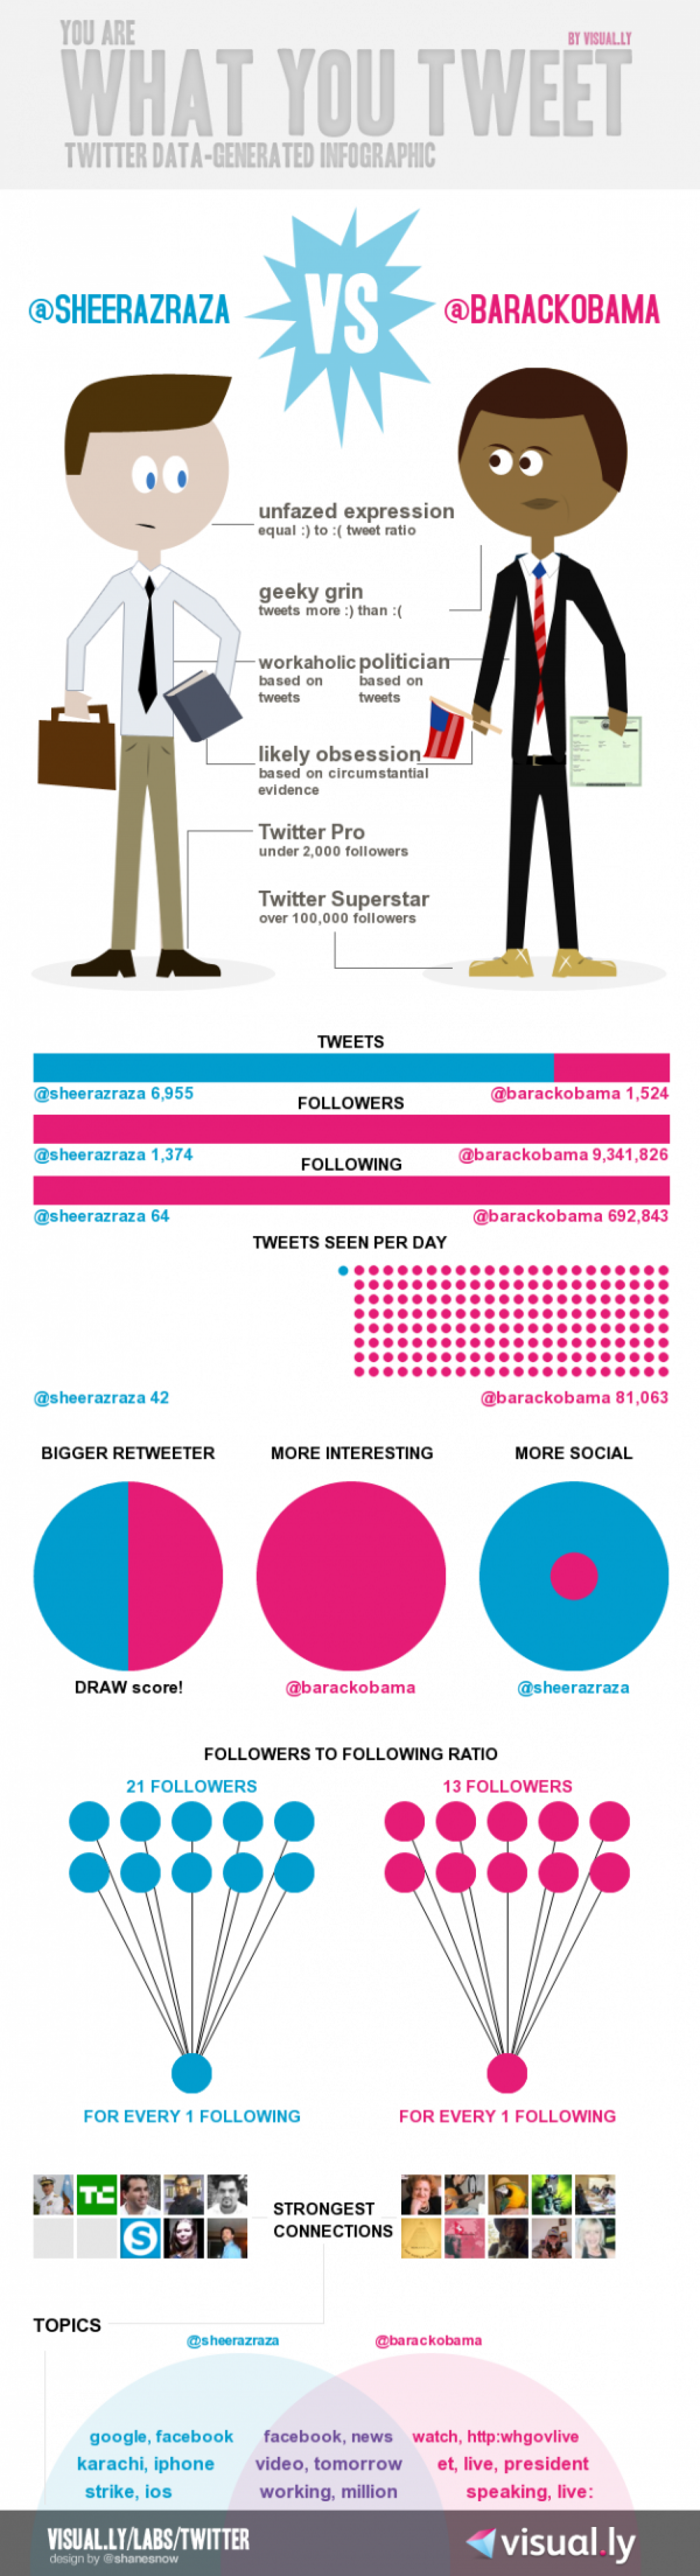 Twitterize Yourself Lets You Generate Your Own Twitter Infographic Infographic